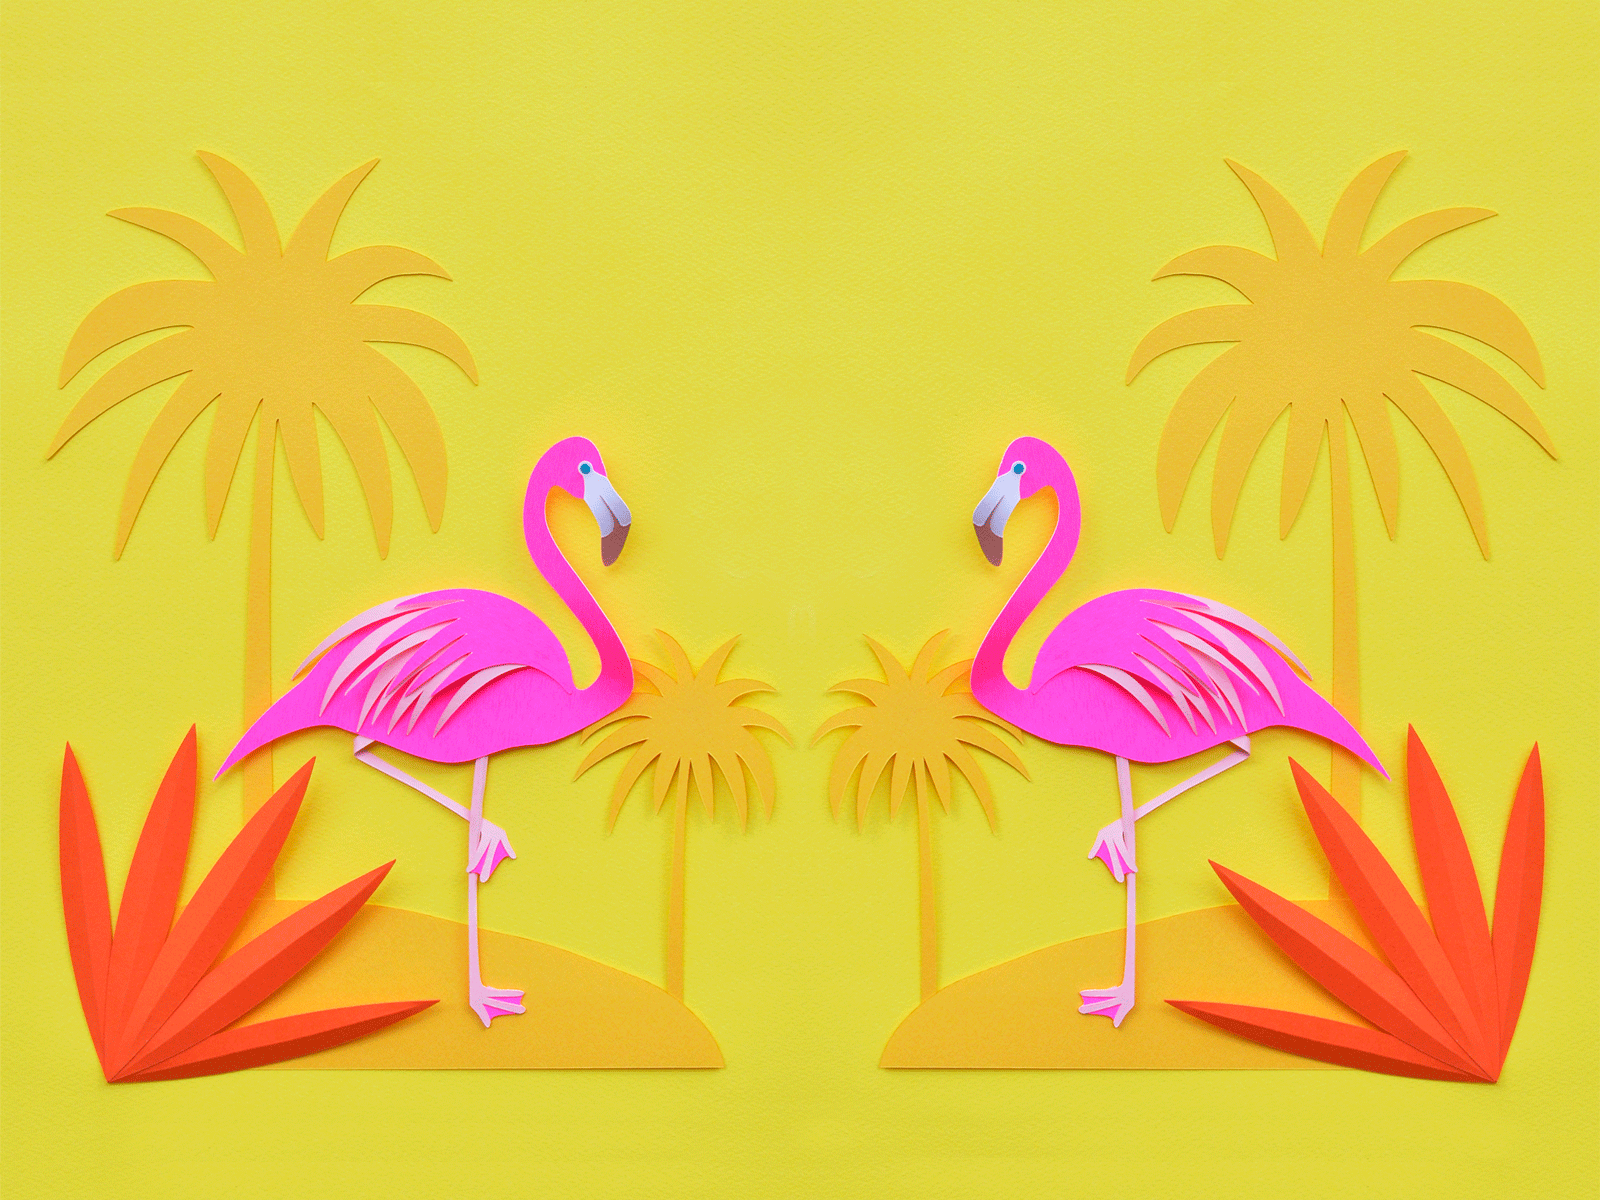 Full HD Flamingo Wallpapers, High Quality, BsnSCB Gallery